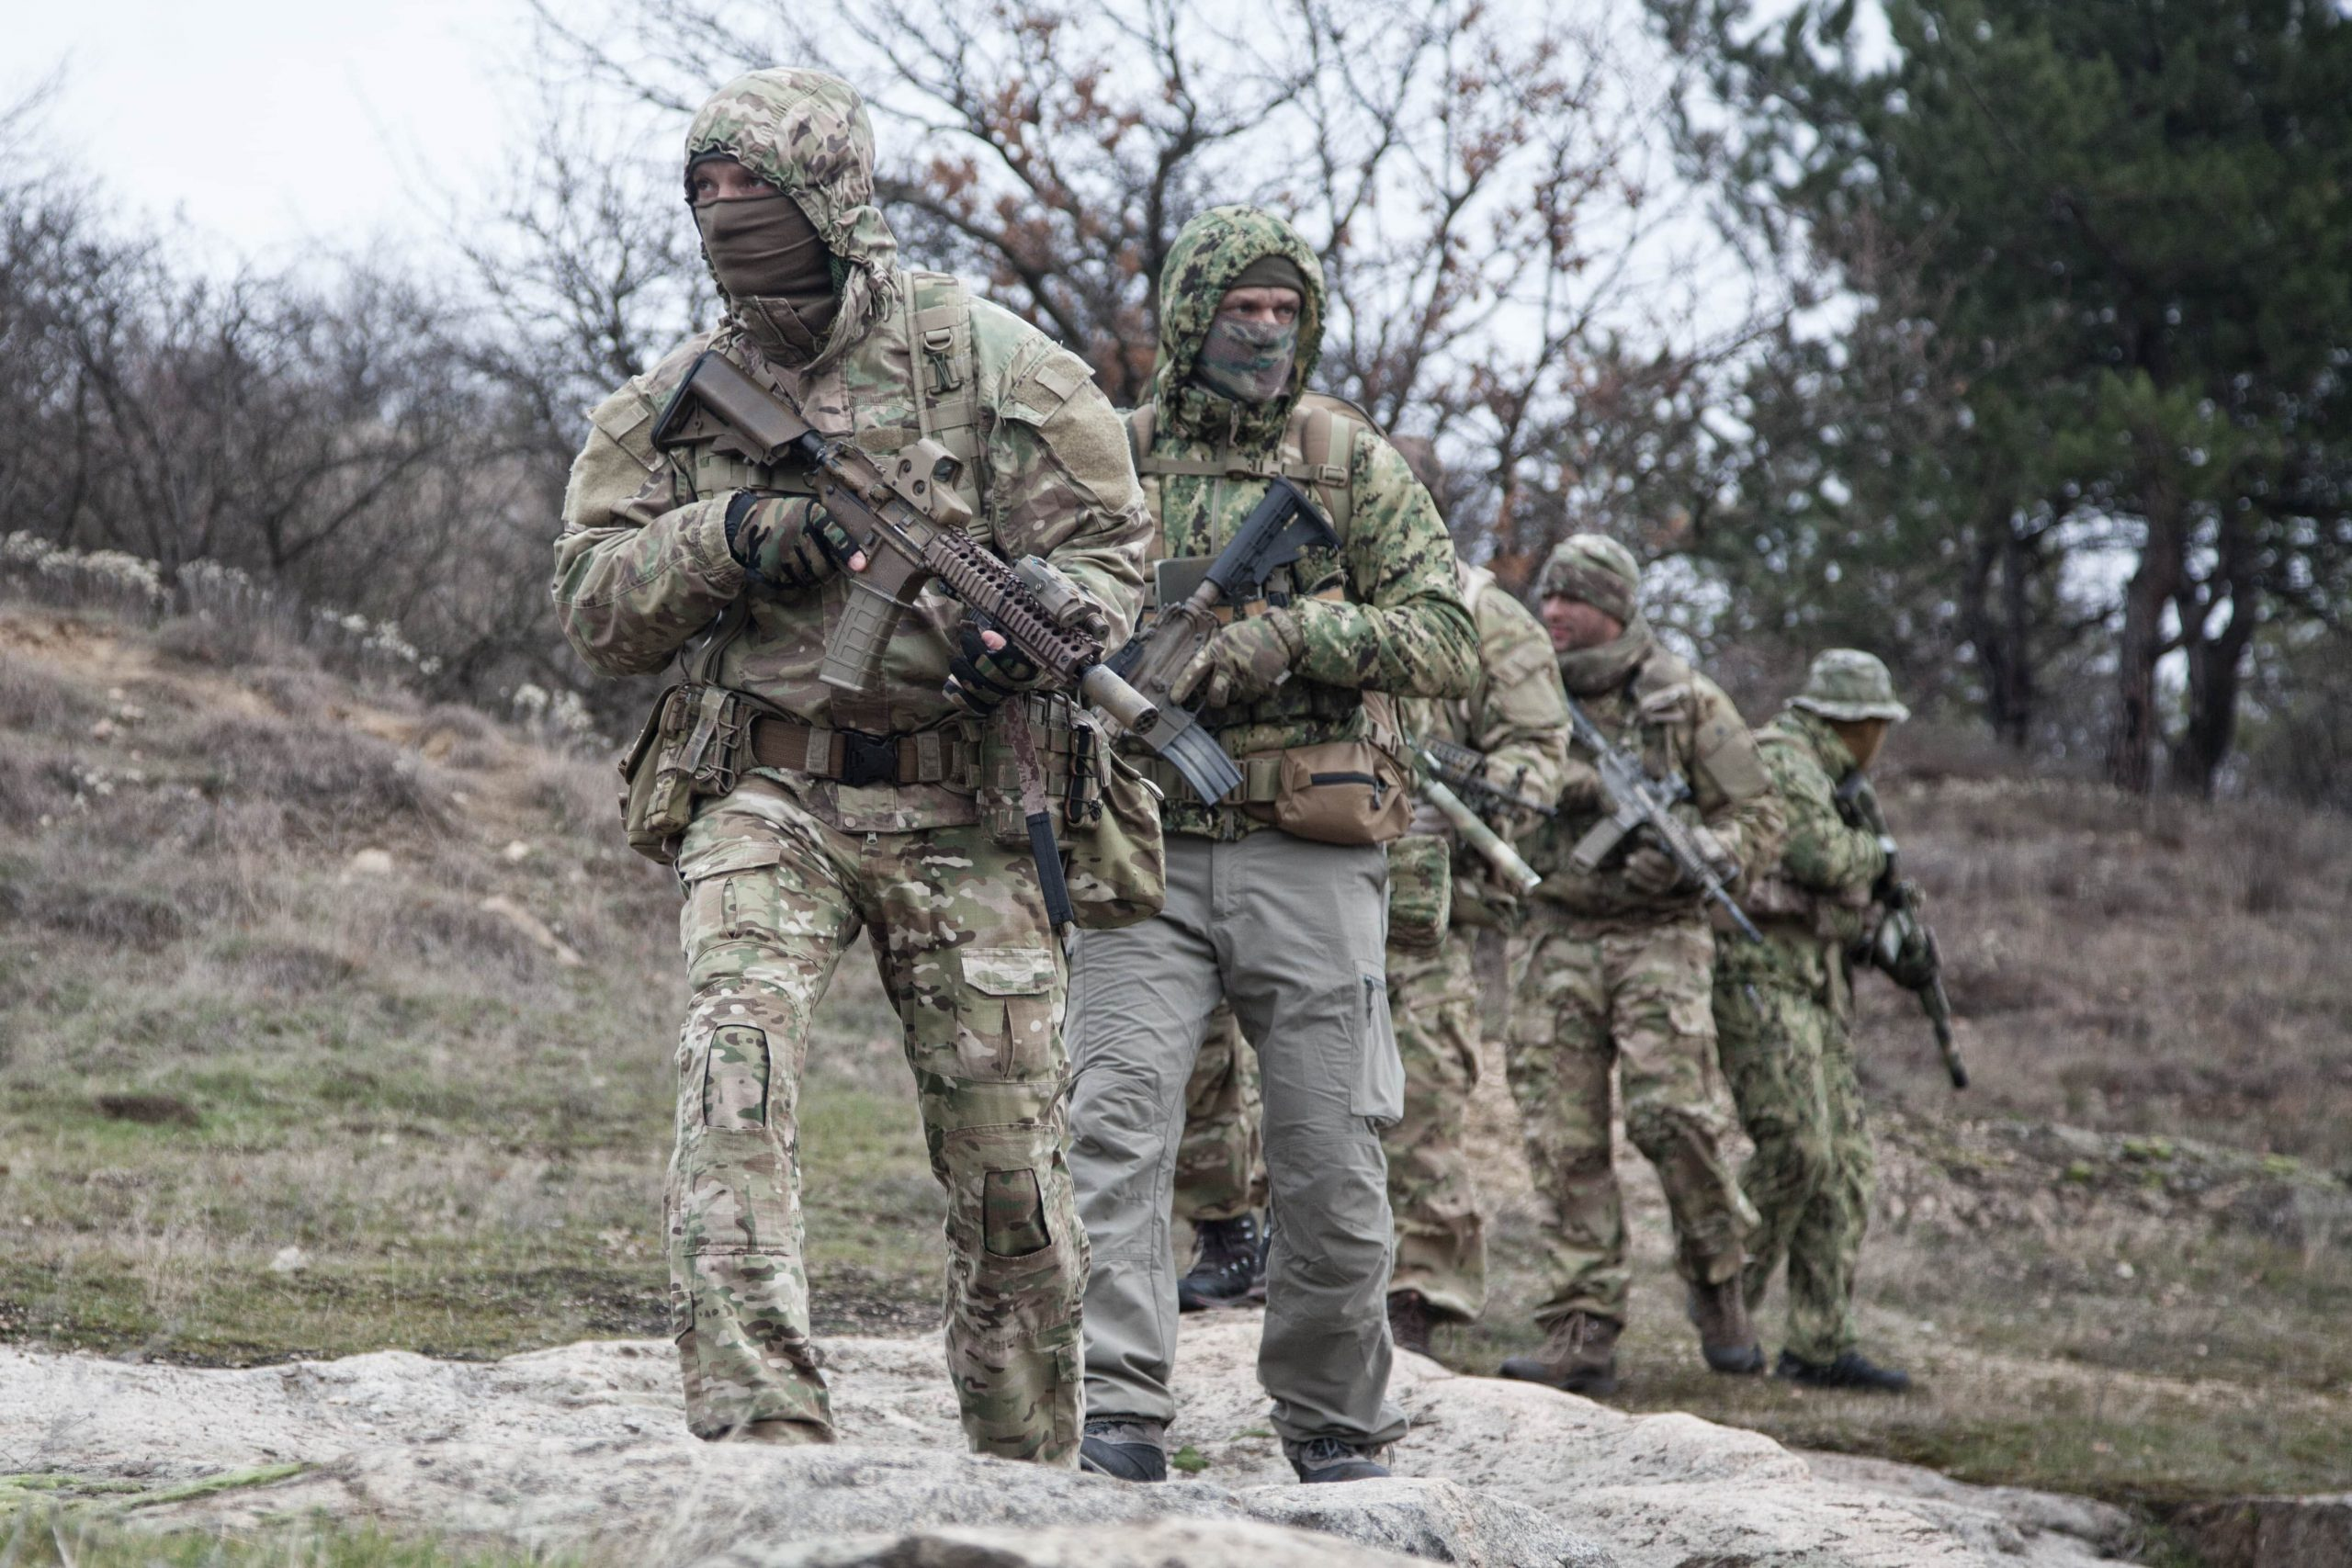 military-army-soldiers-team-patrolling-in-forest-S7LQZ4H